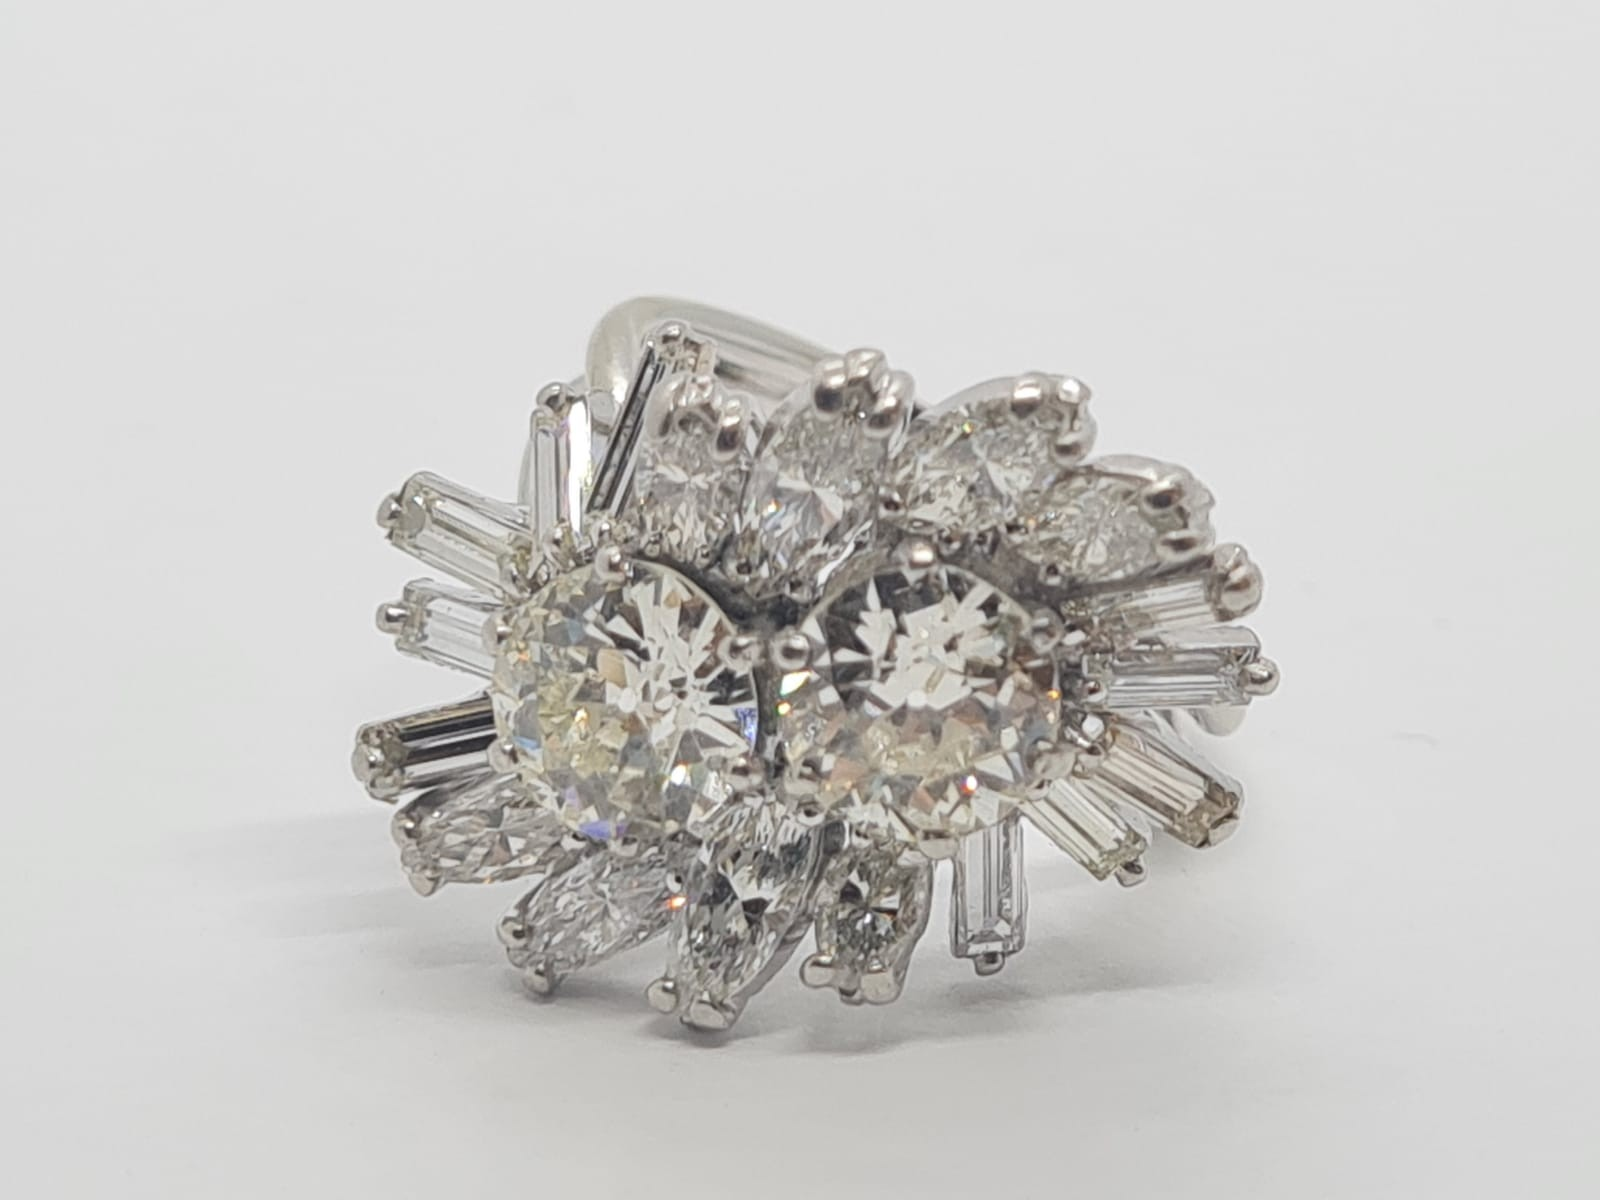 18k white gold diamond cluster ring with approx over 5ct diamonds in total, weight 10g and size M1/2 - Image 7 of 11